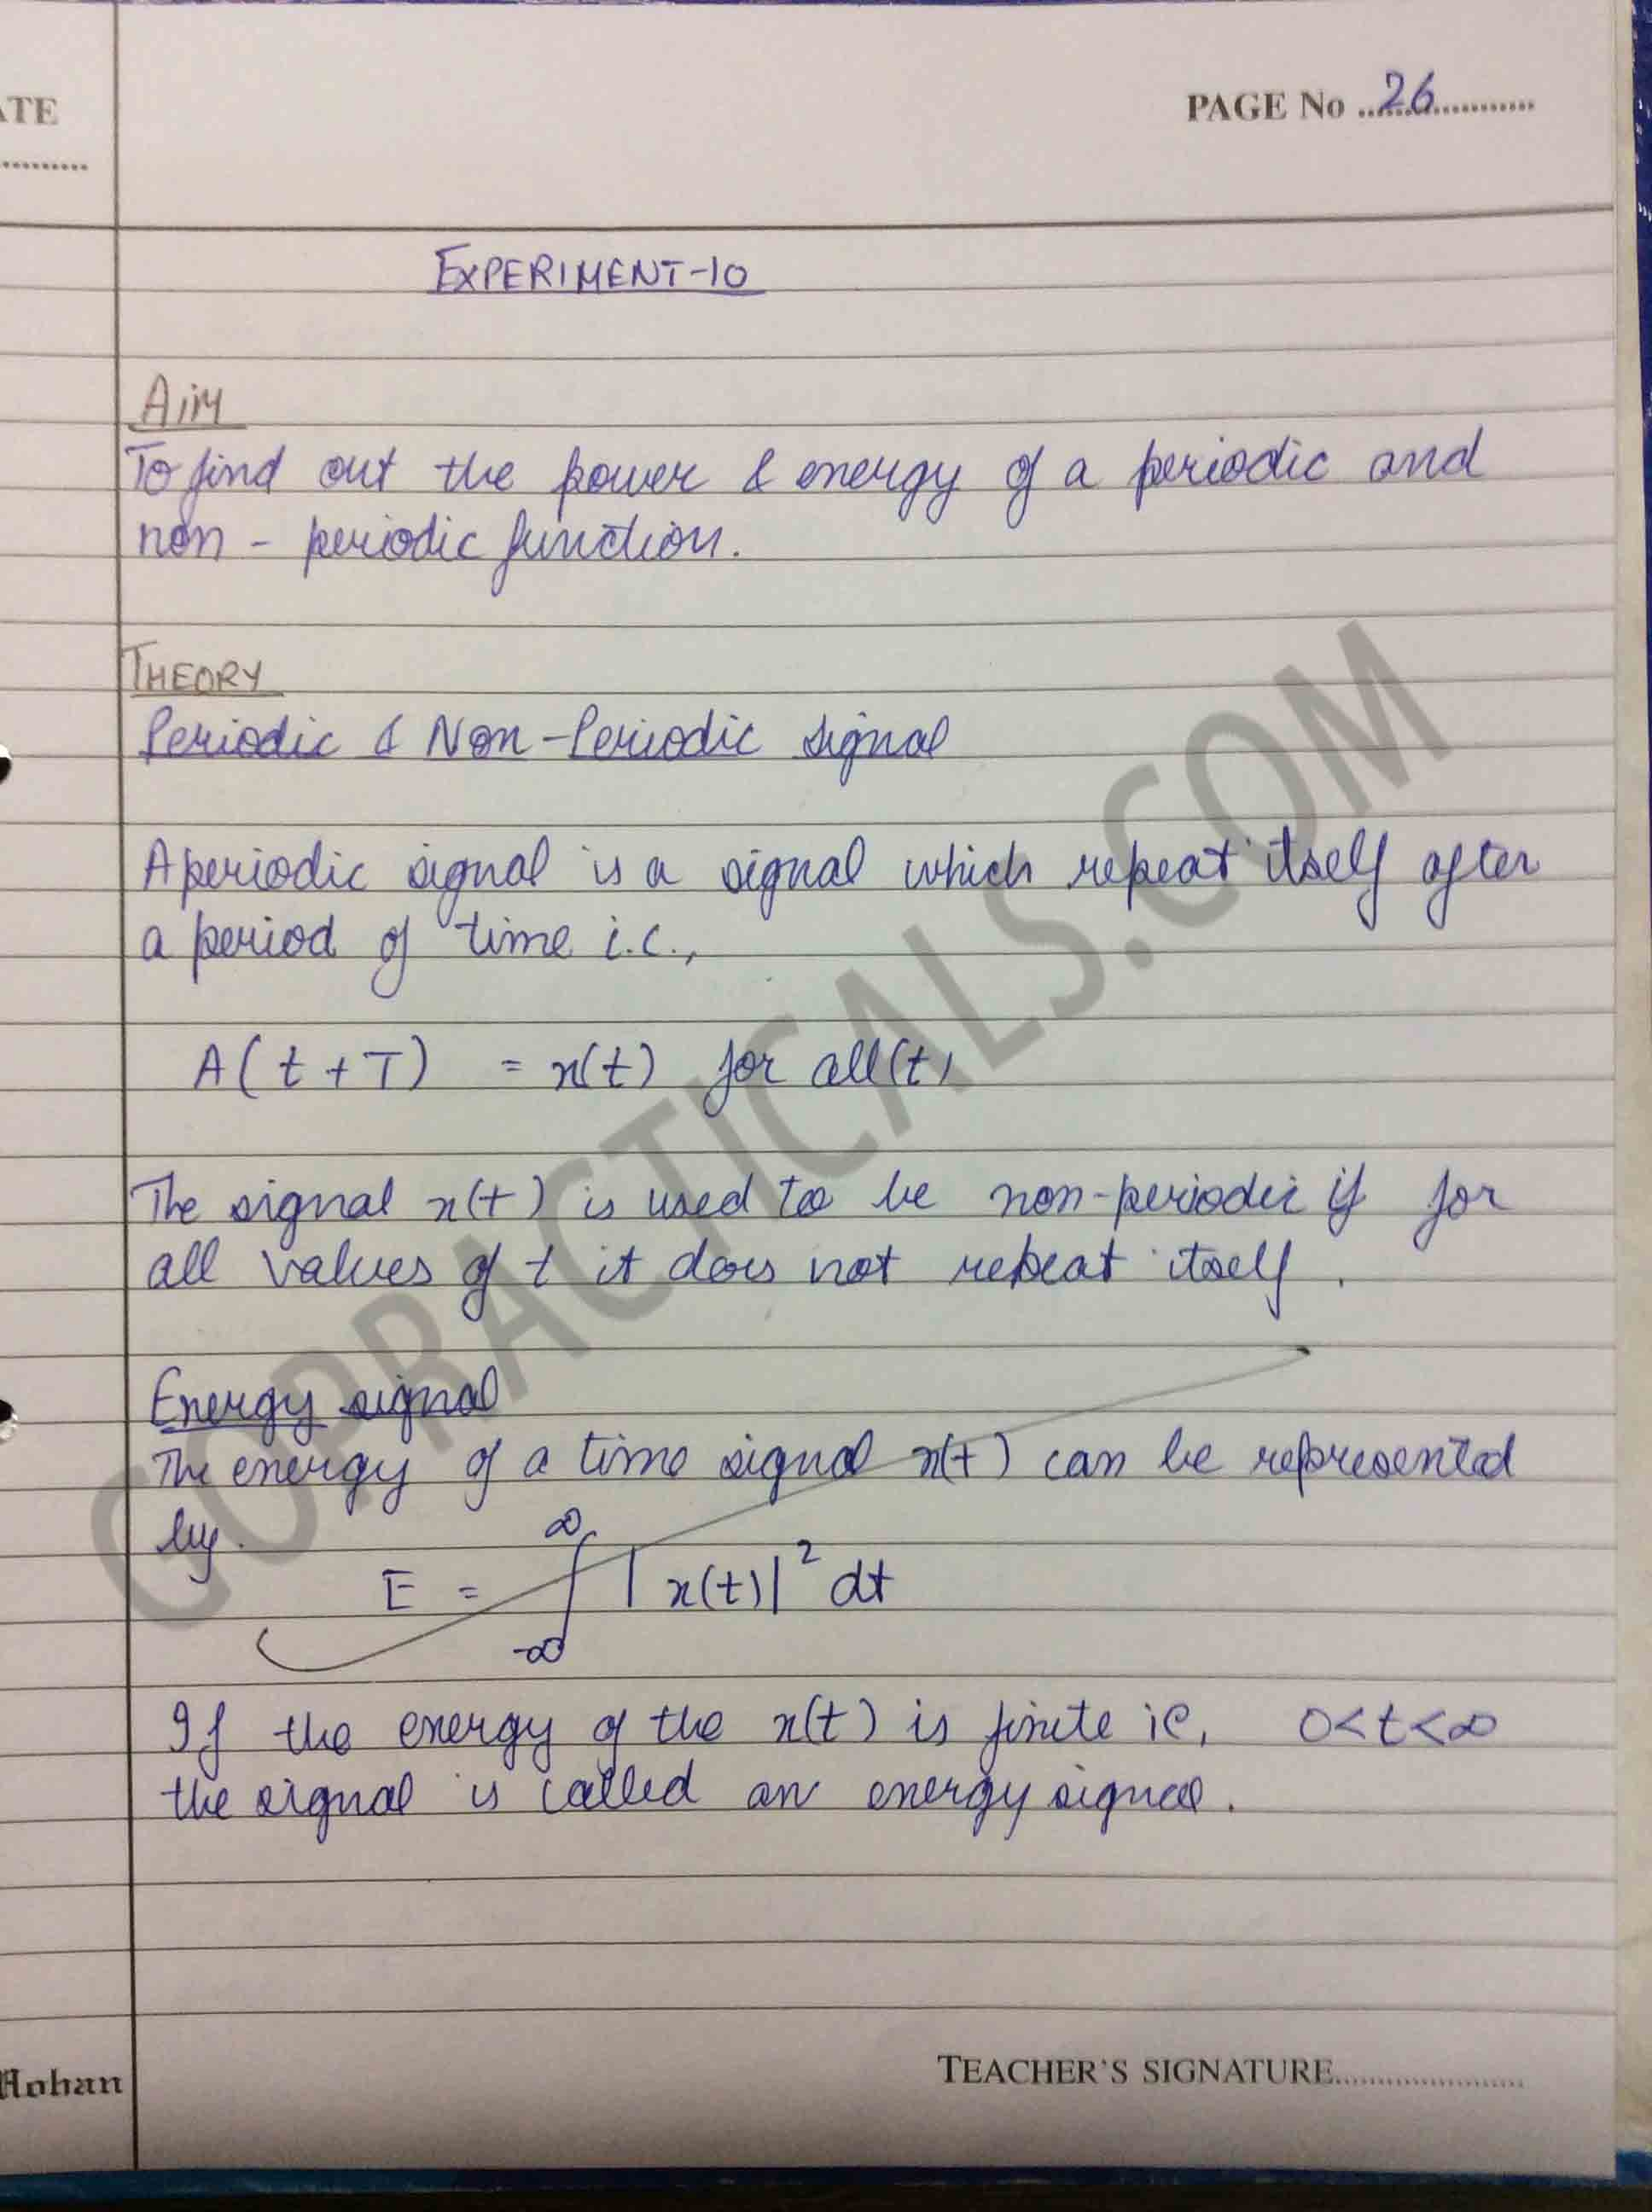 periodic and non periodic functions-1